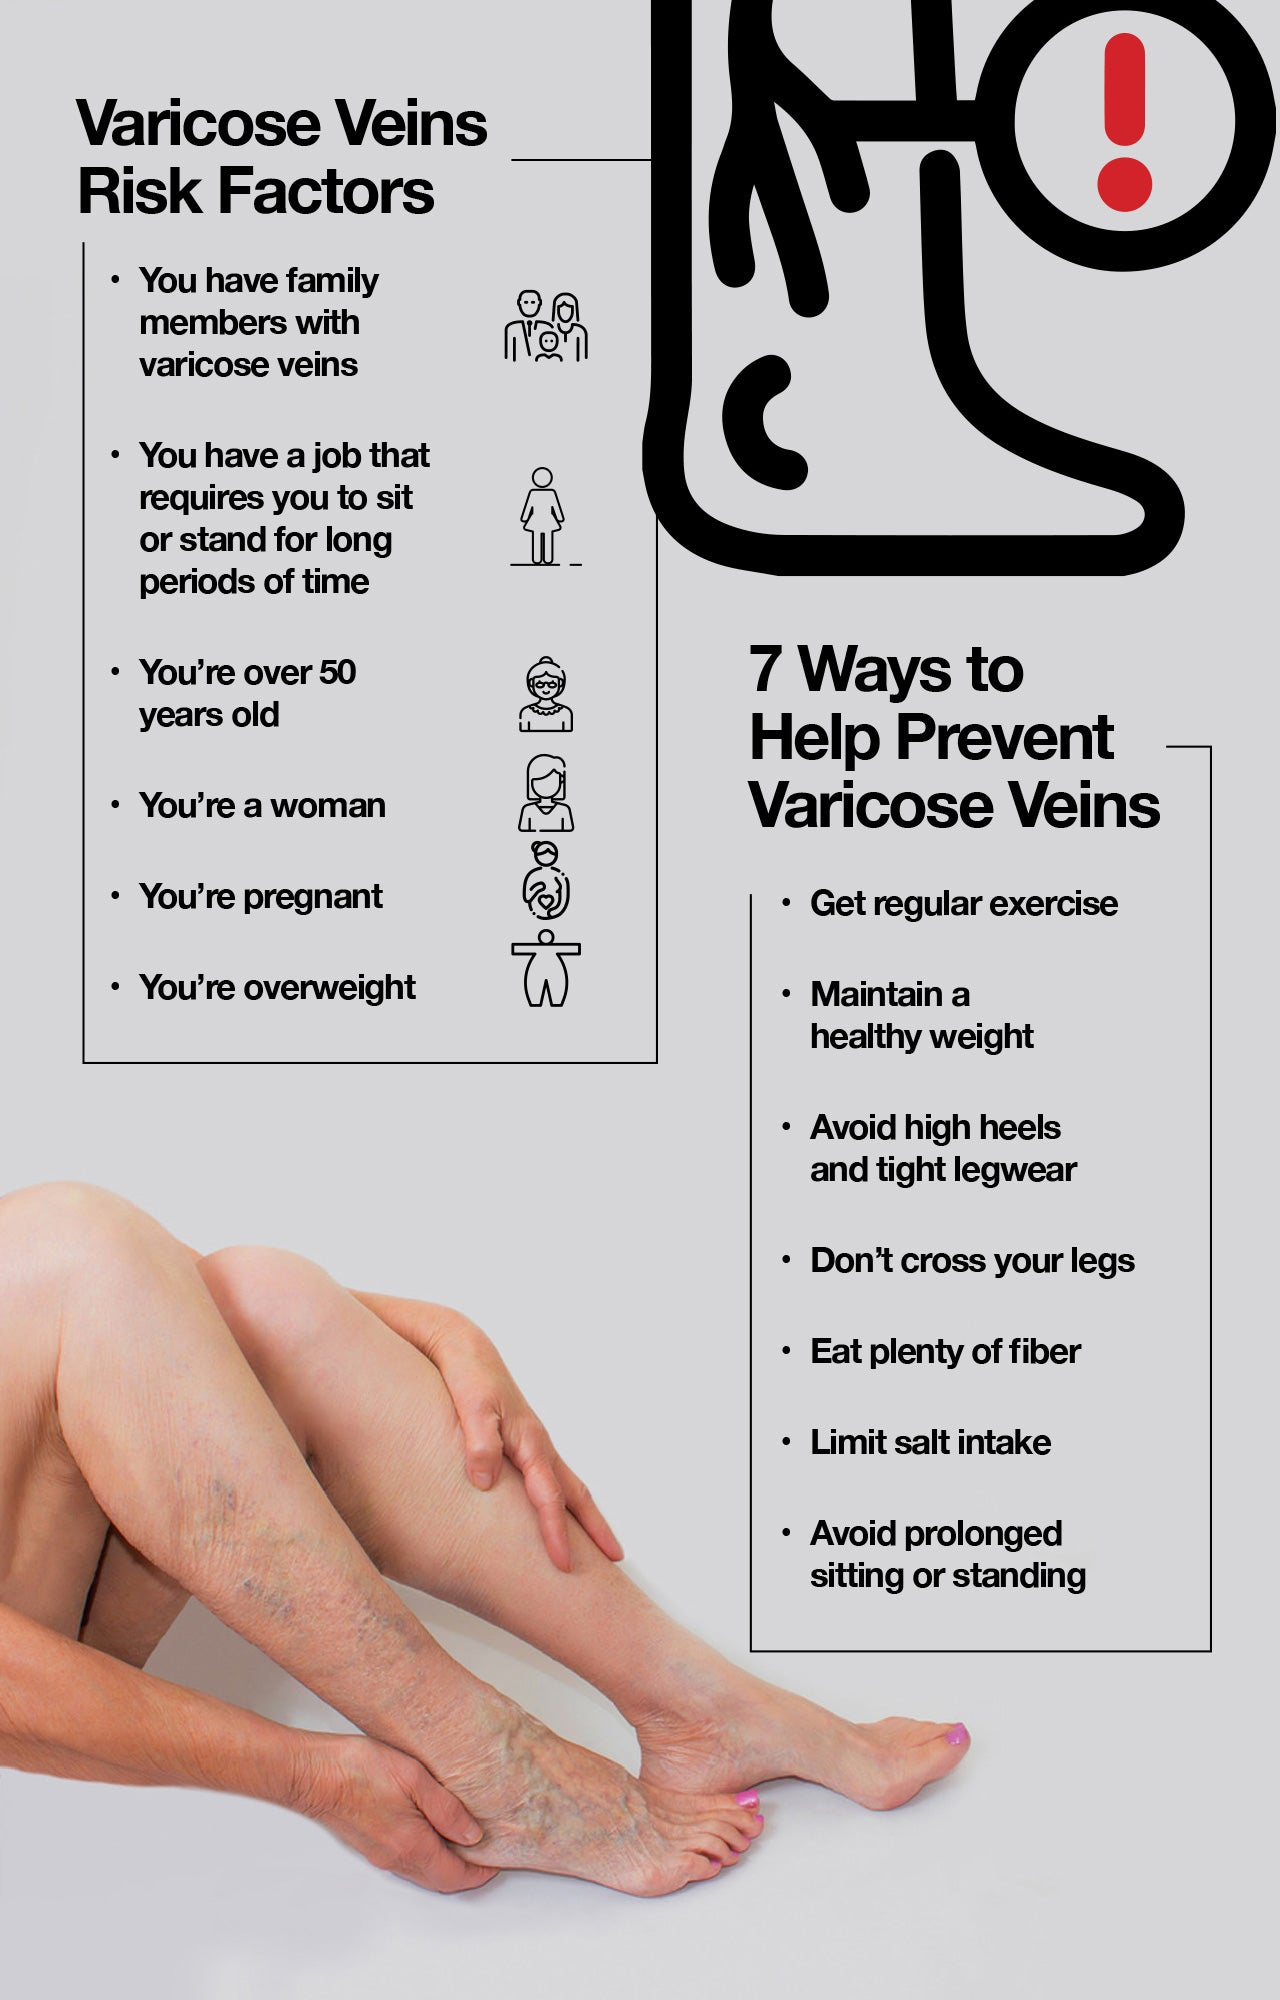 Varicose veins risk factors and prevention